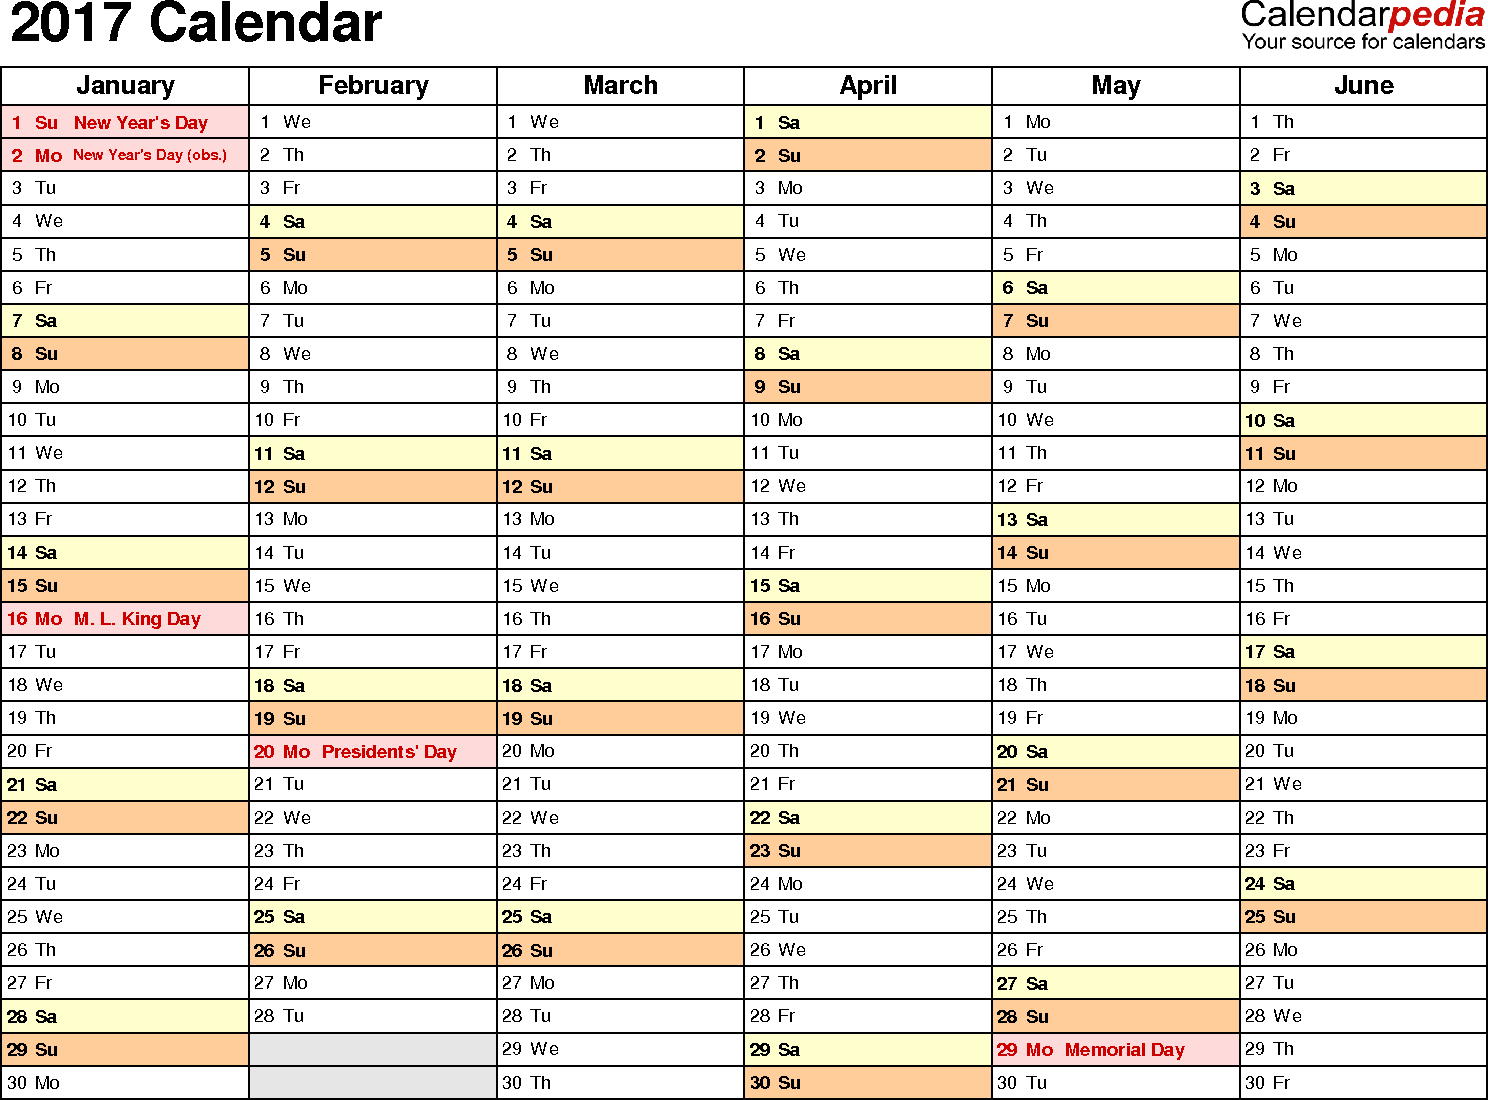 Ediblewildsus  Stunning  Calendar  Download  Free Printable Excel Templates Xls With Hot Template   Calendar For Excel Months Horizontally  Pages Landscape Orientation With Delightful Excel Recover Unsaved File Also Time In Excel In Addition How To Do Weighted Average In Excel And Sort Data In Excel As Well As Current Date Excel Additionally Excel Templates Free From Calendarpediacom With Ediblewildsus  Hot  Calendar  Download  Free Printable Excel Templates Xls With Delightful Template   Calendar For Excel Months Horizontally  Pages Landscape Orientation And Stunning Excel Recover Unsaved File Also Time In Excel In Addition How To Do Weighted Average In Excel From Calendarpediacom